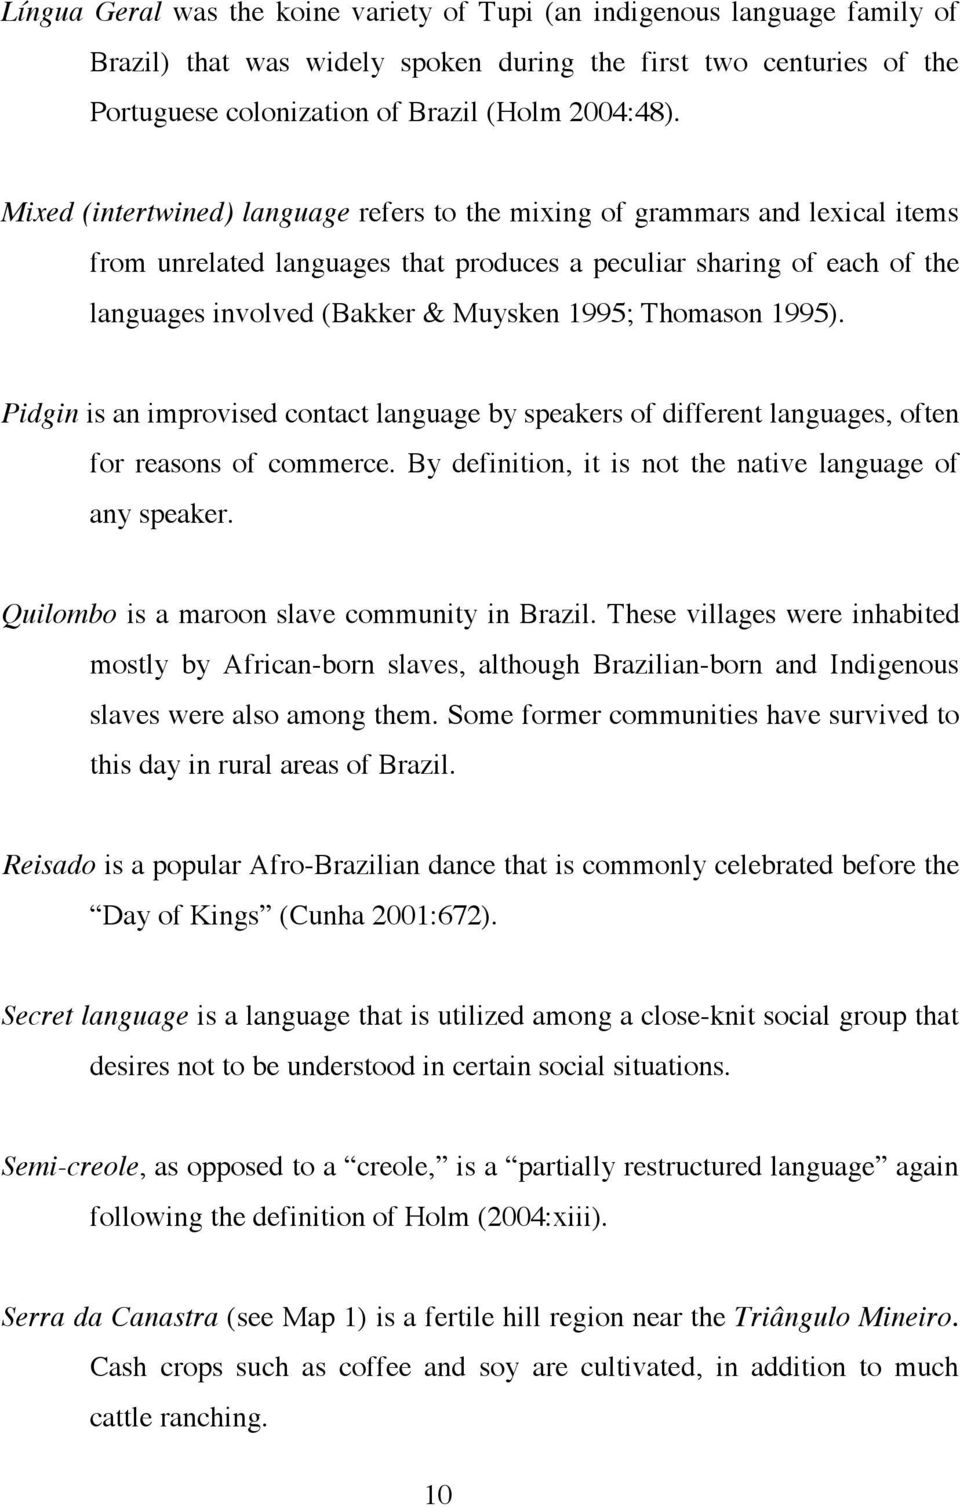 Thomason 1995). Pidgin is an improvised contact language by speakers of different languages, often for reasons of commerce. By definition, it is not the native language of any speaker.